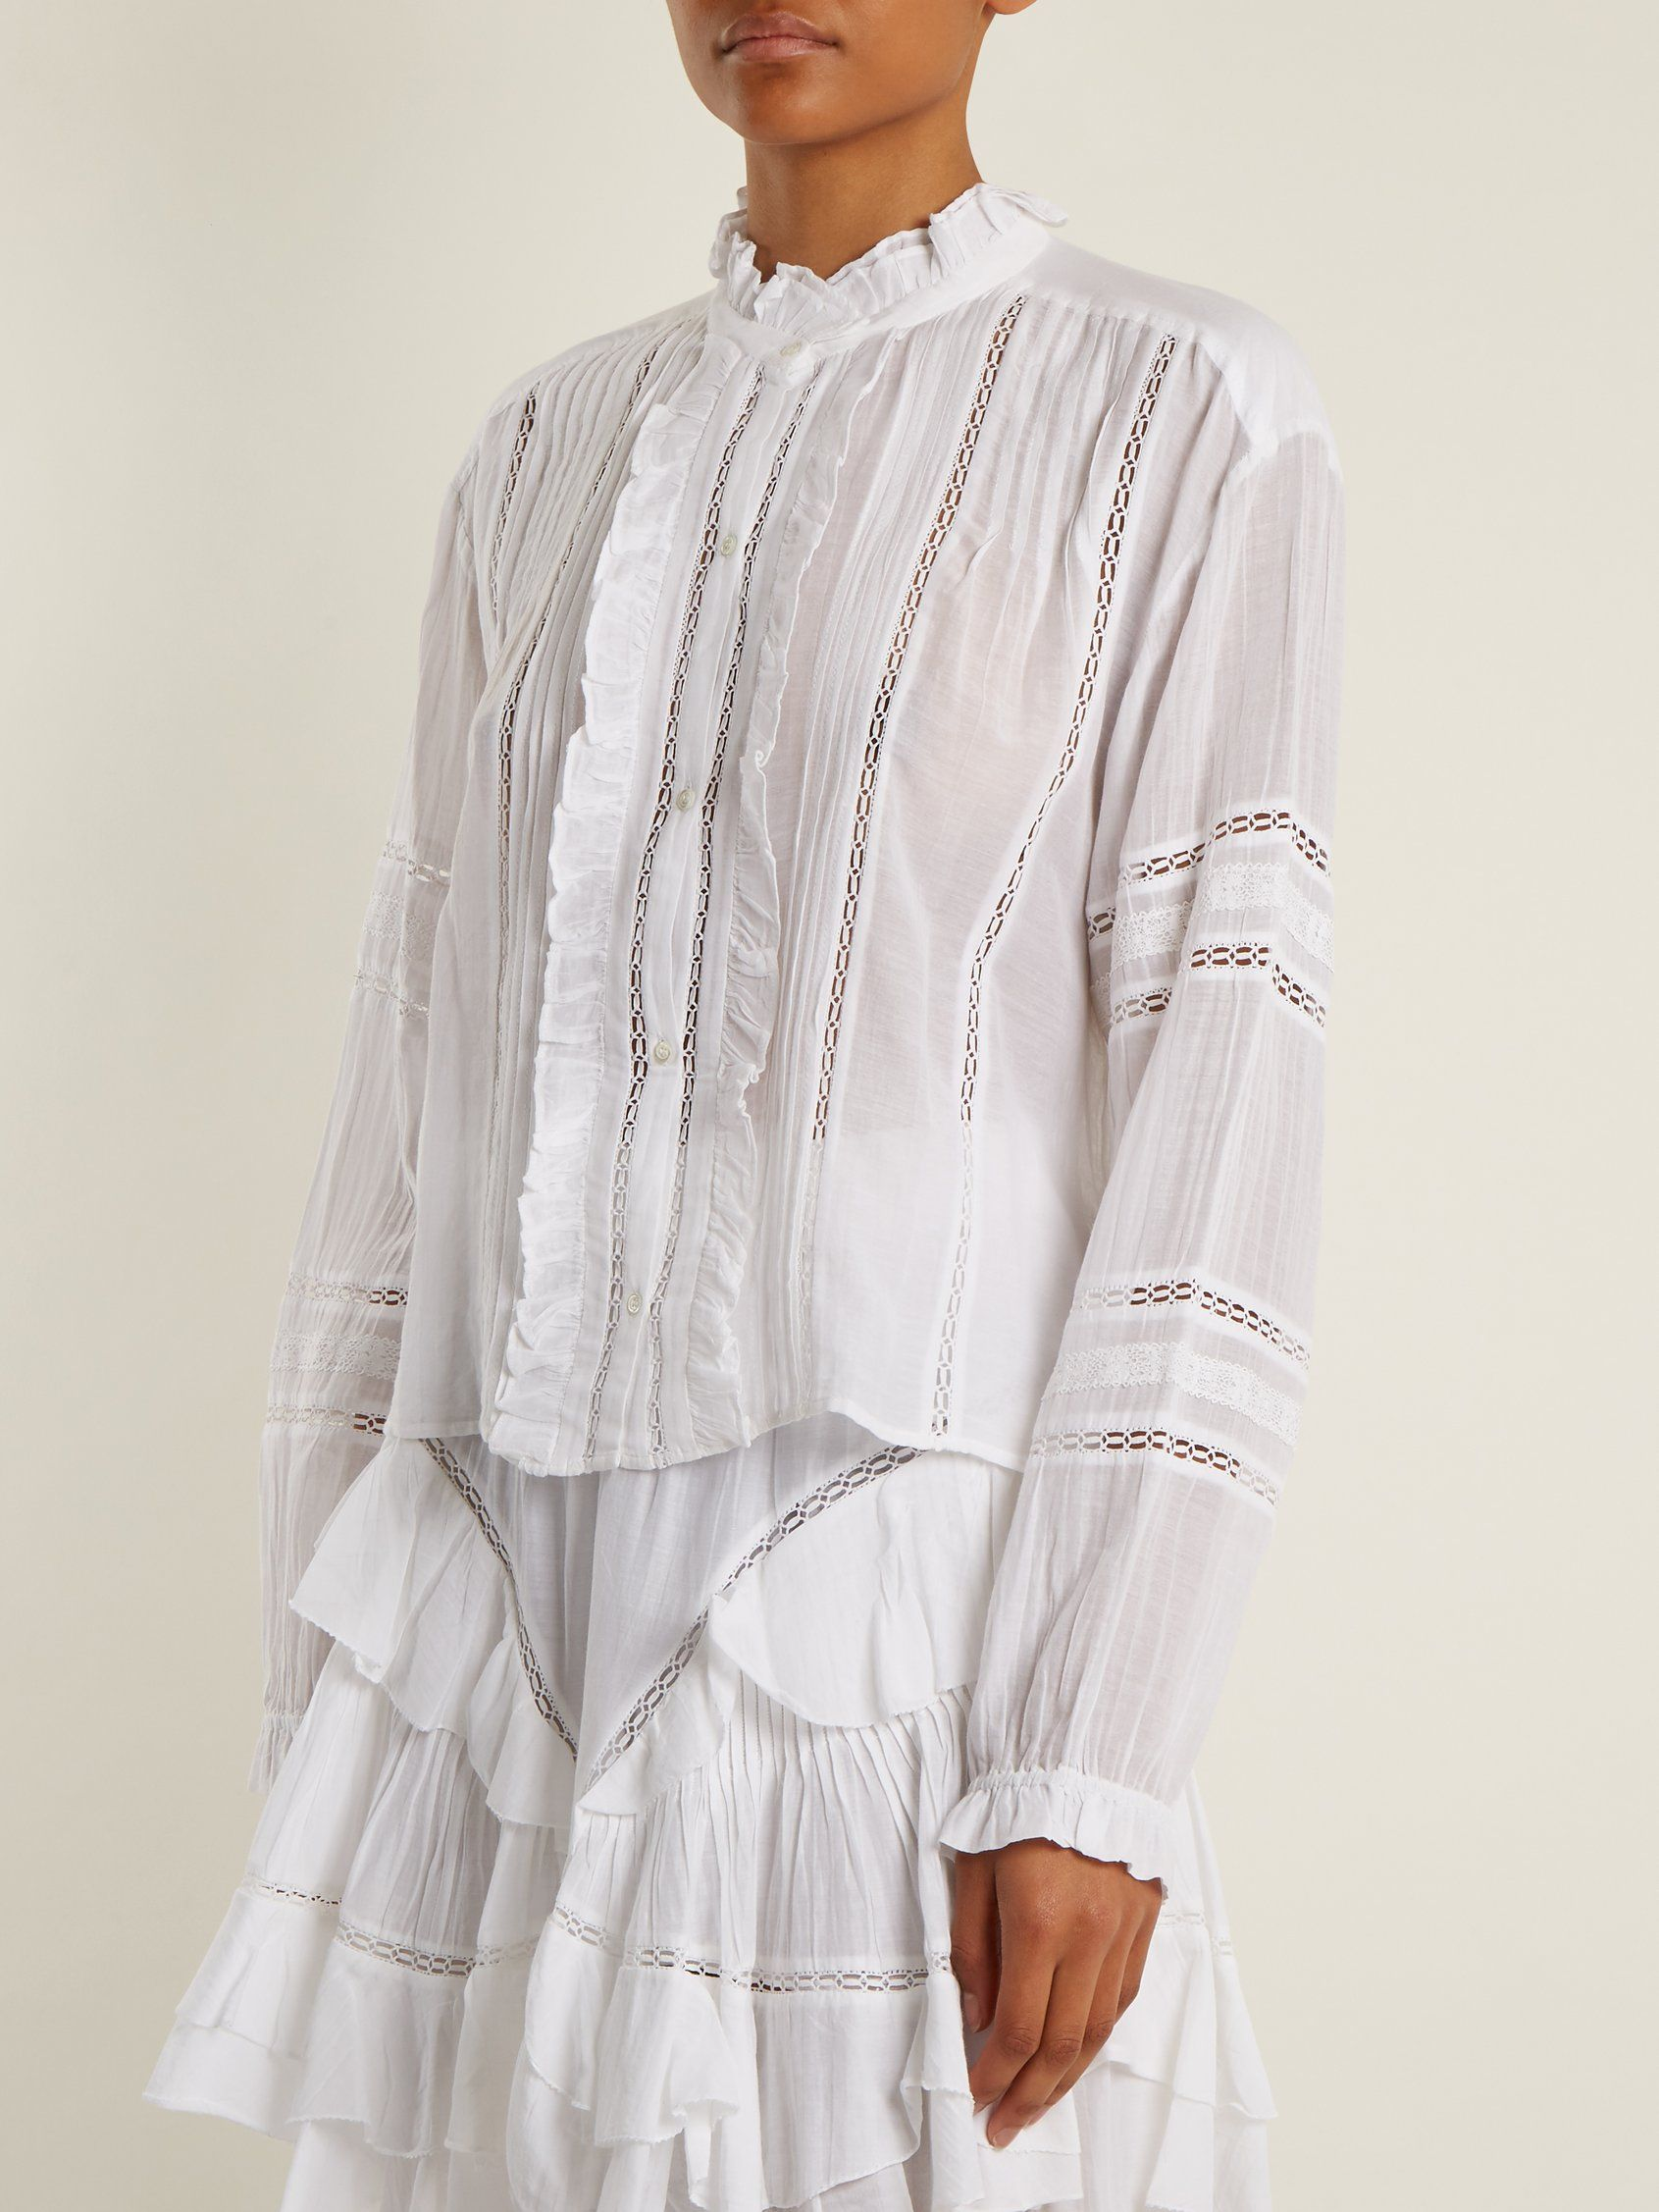 Clearance Cheap Valda lace-trimmed cotton-blend blouse Isabel Marant Free Shipping Very Cheap zSsj0a